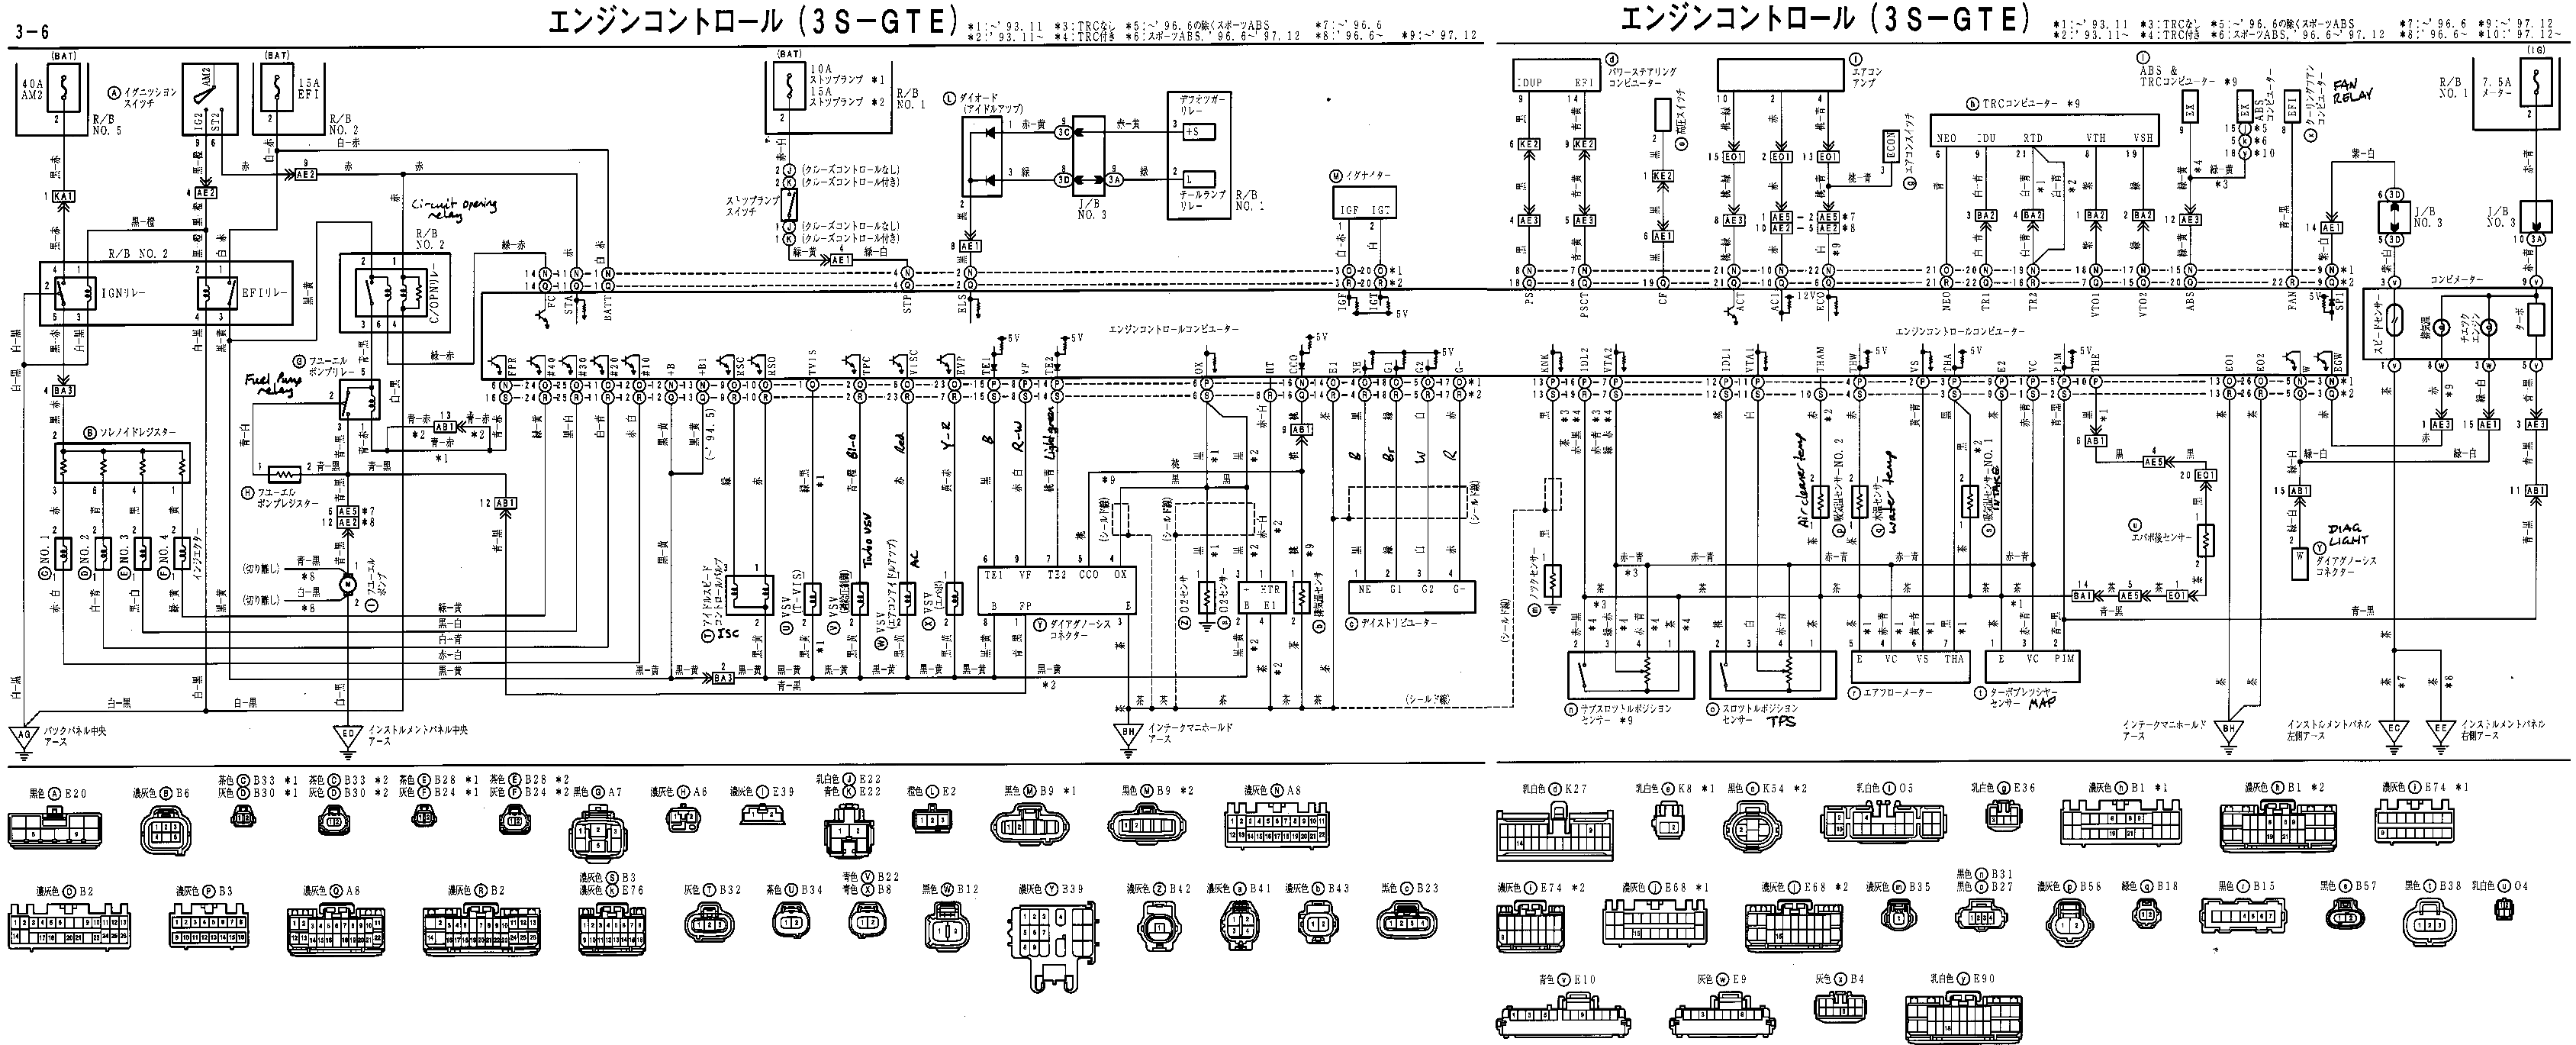 Unknown 3SGTE Diagram mwp's toyota celica gt4 (st165, st185, st205) documents & media 3sge beams wiring diagram at fashall.co